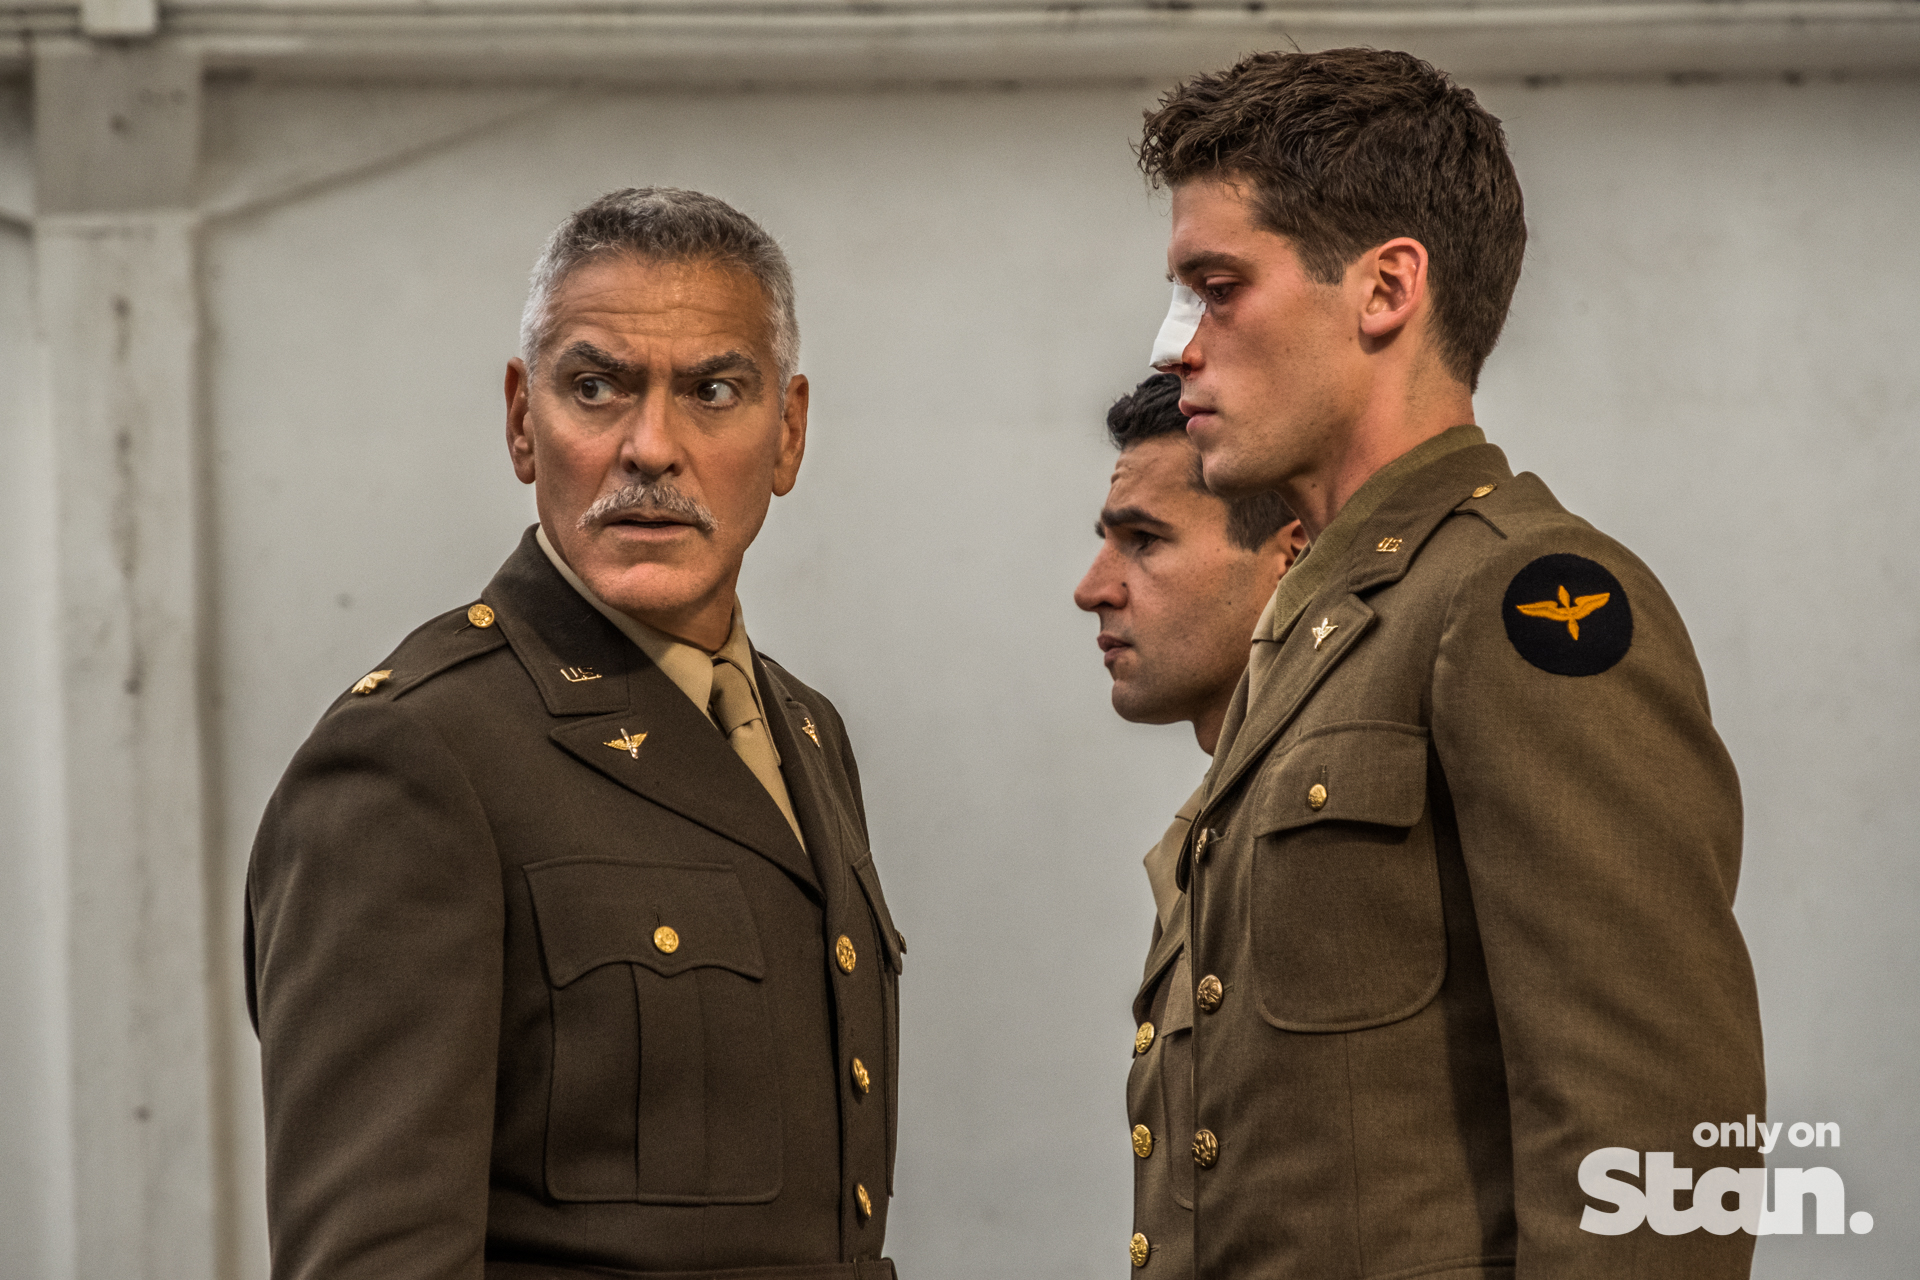 GEORGE CLOONEY IN REMAKE OF CATCH 22 ON STAN